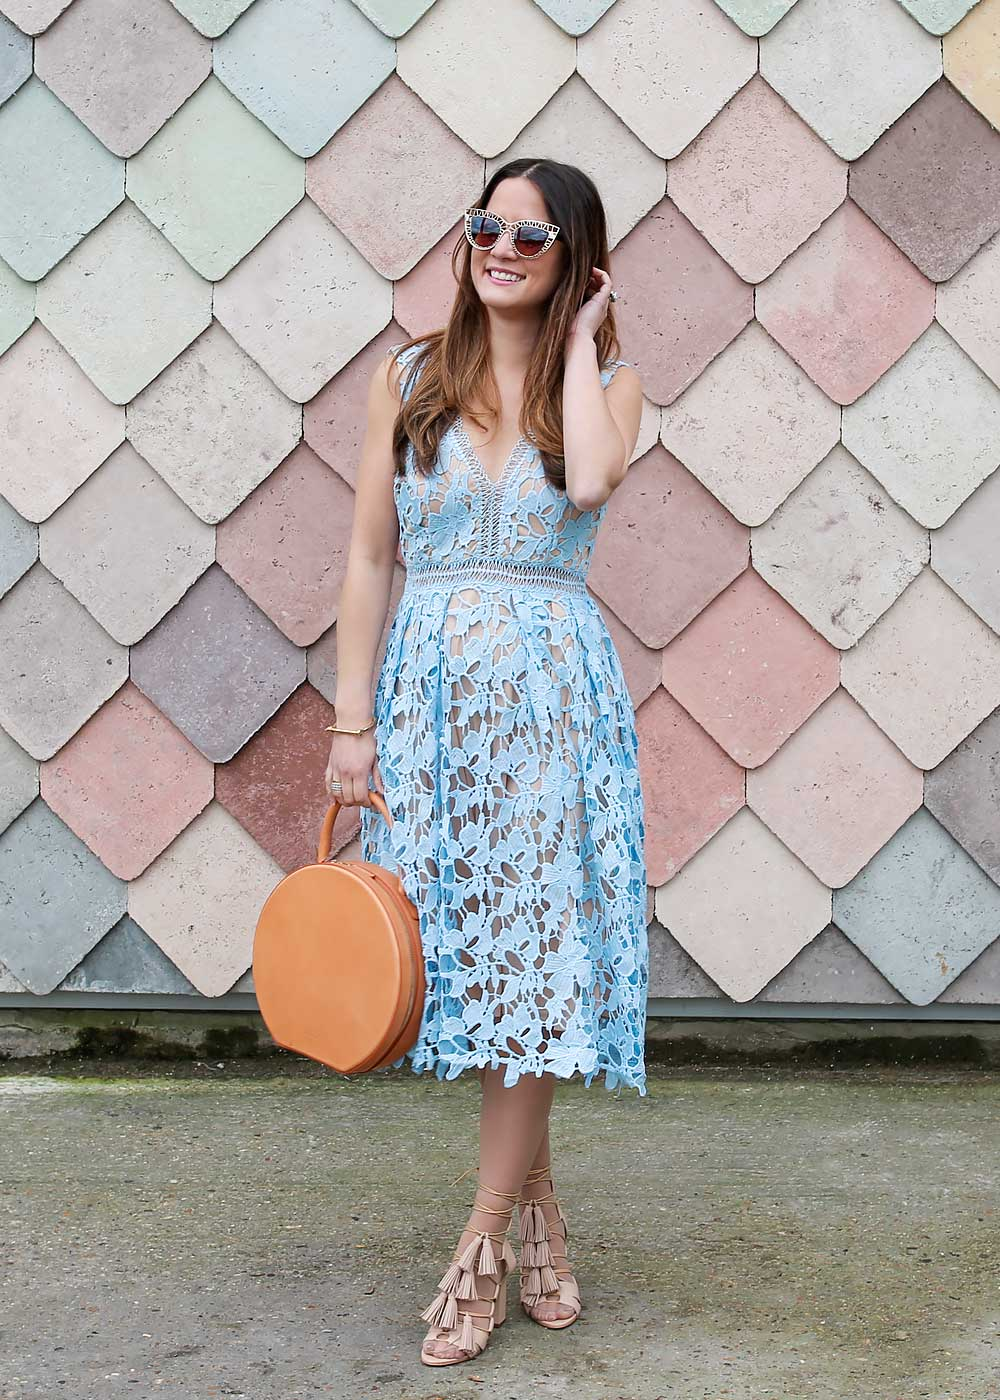 fashion bloggers who love color